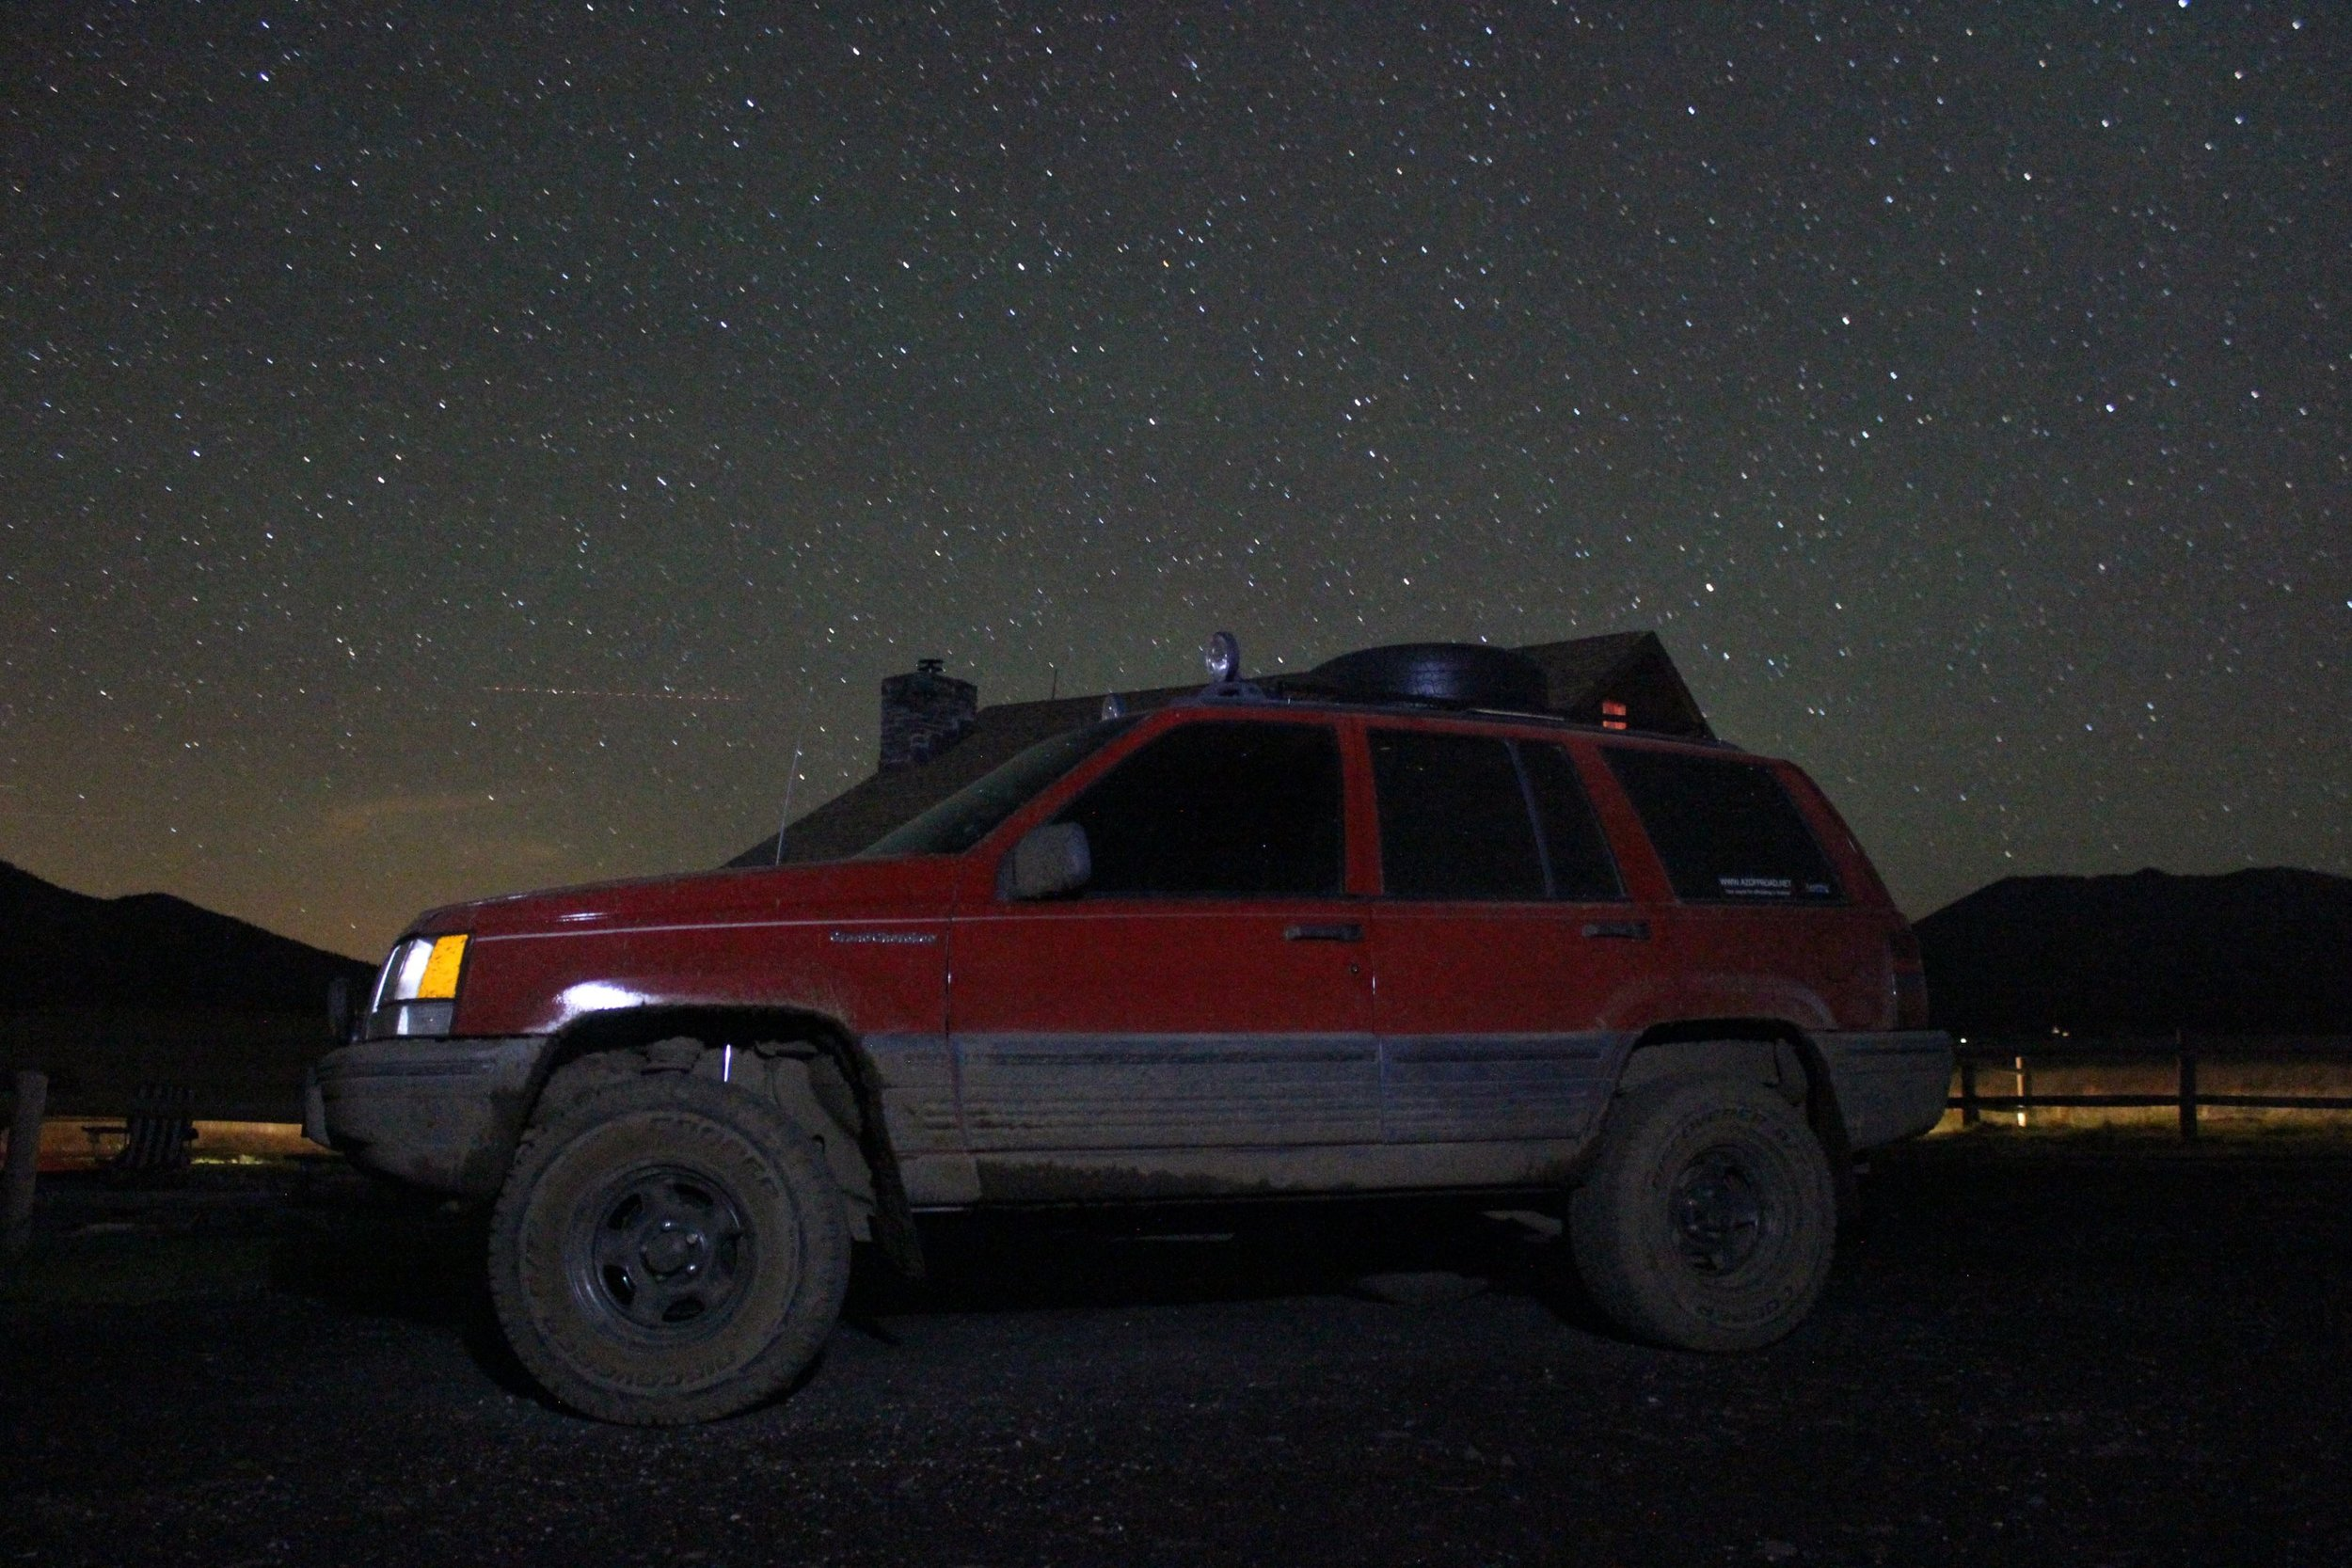 The Jeep at night